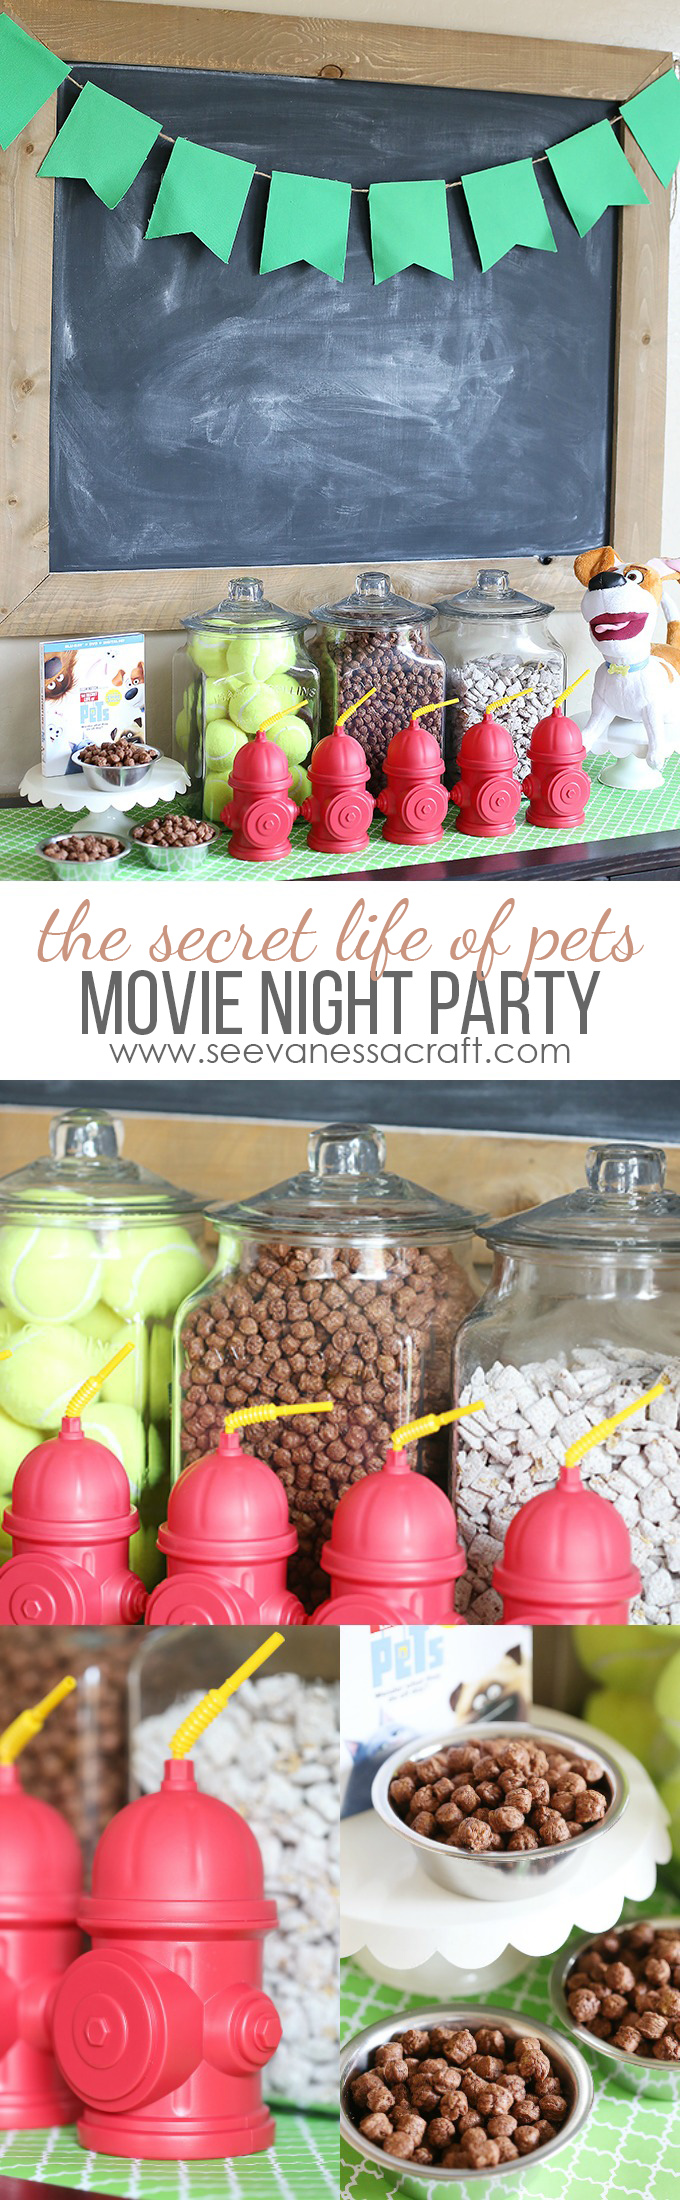 the-secret-life-of-pets-movie-night-party-copy